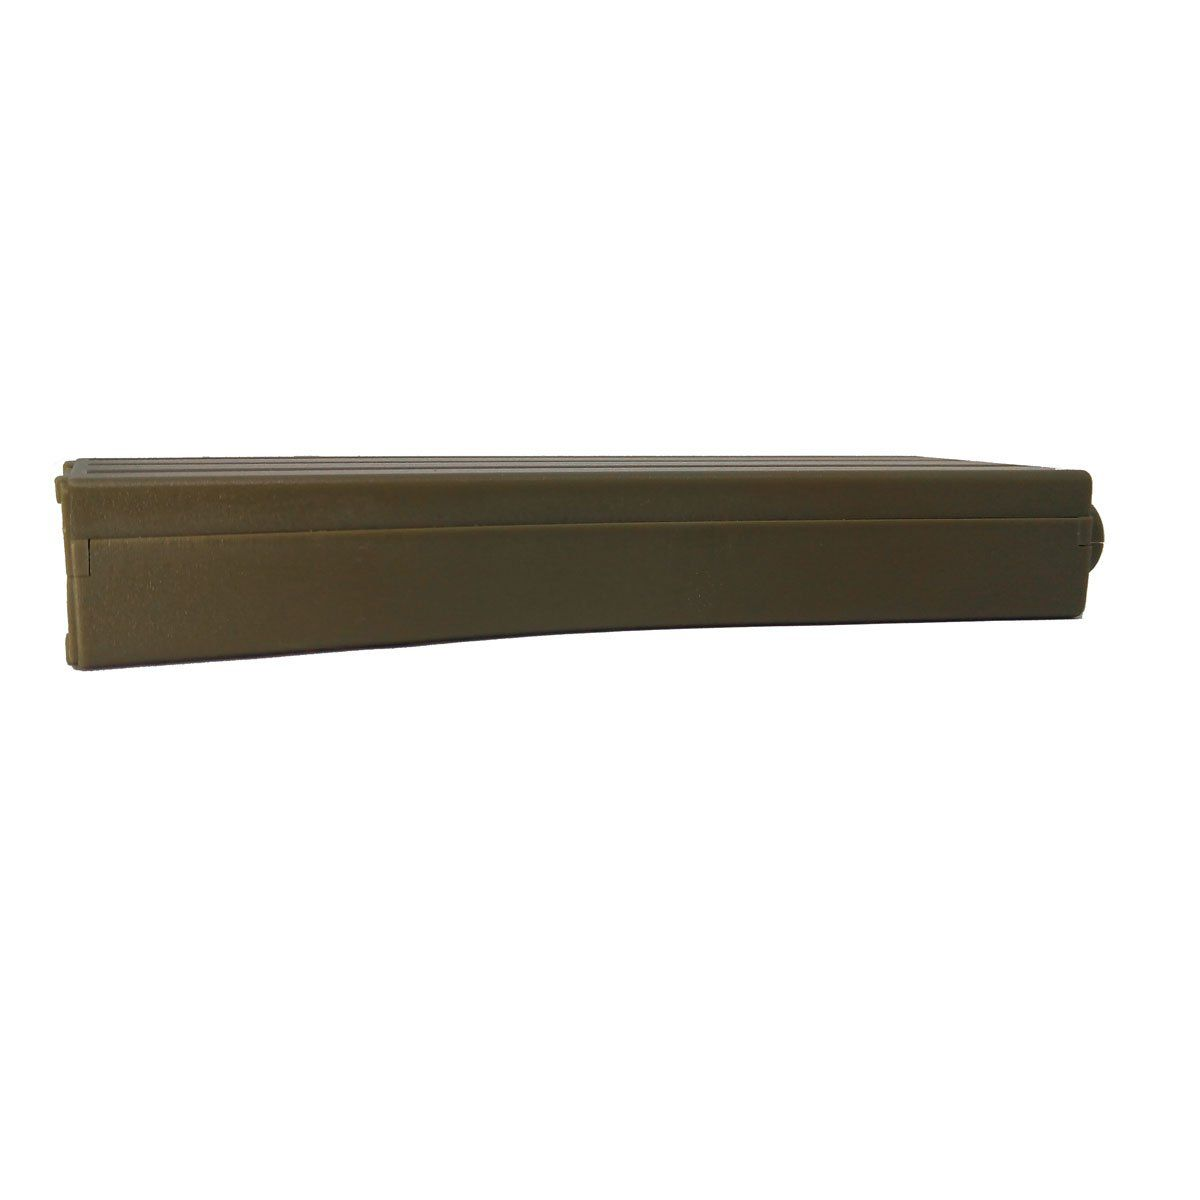 Magazine Para Rifle M4 Mid Cap 120 BBs Tan King Arms